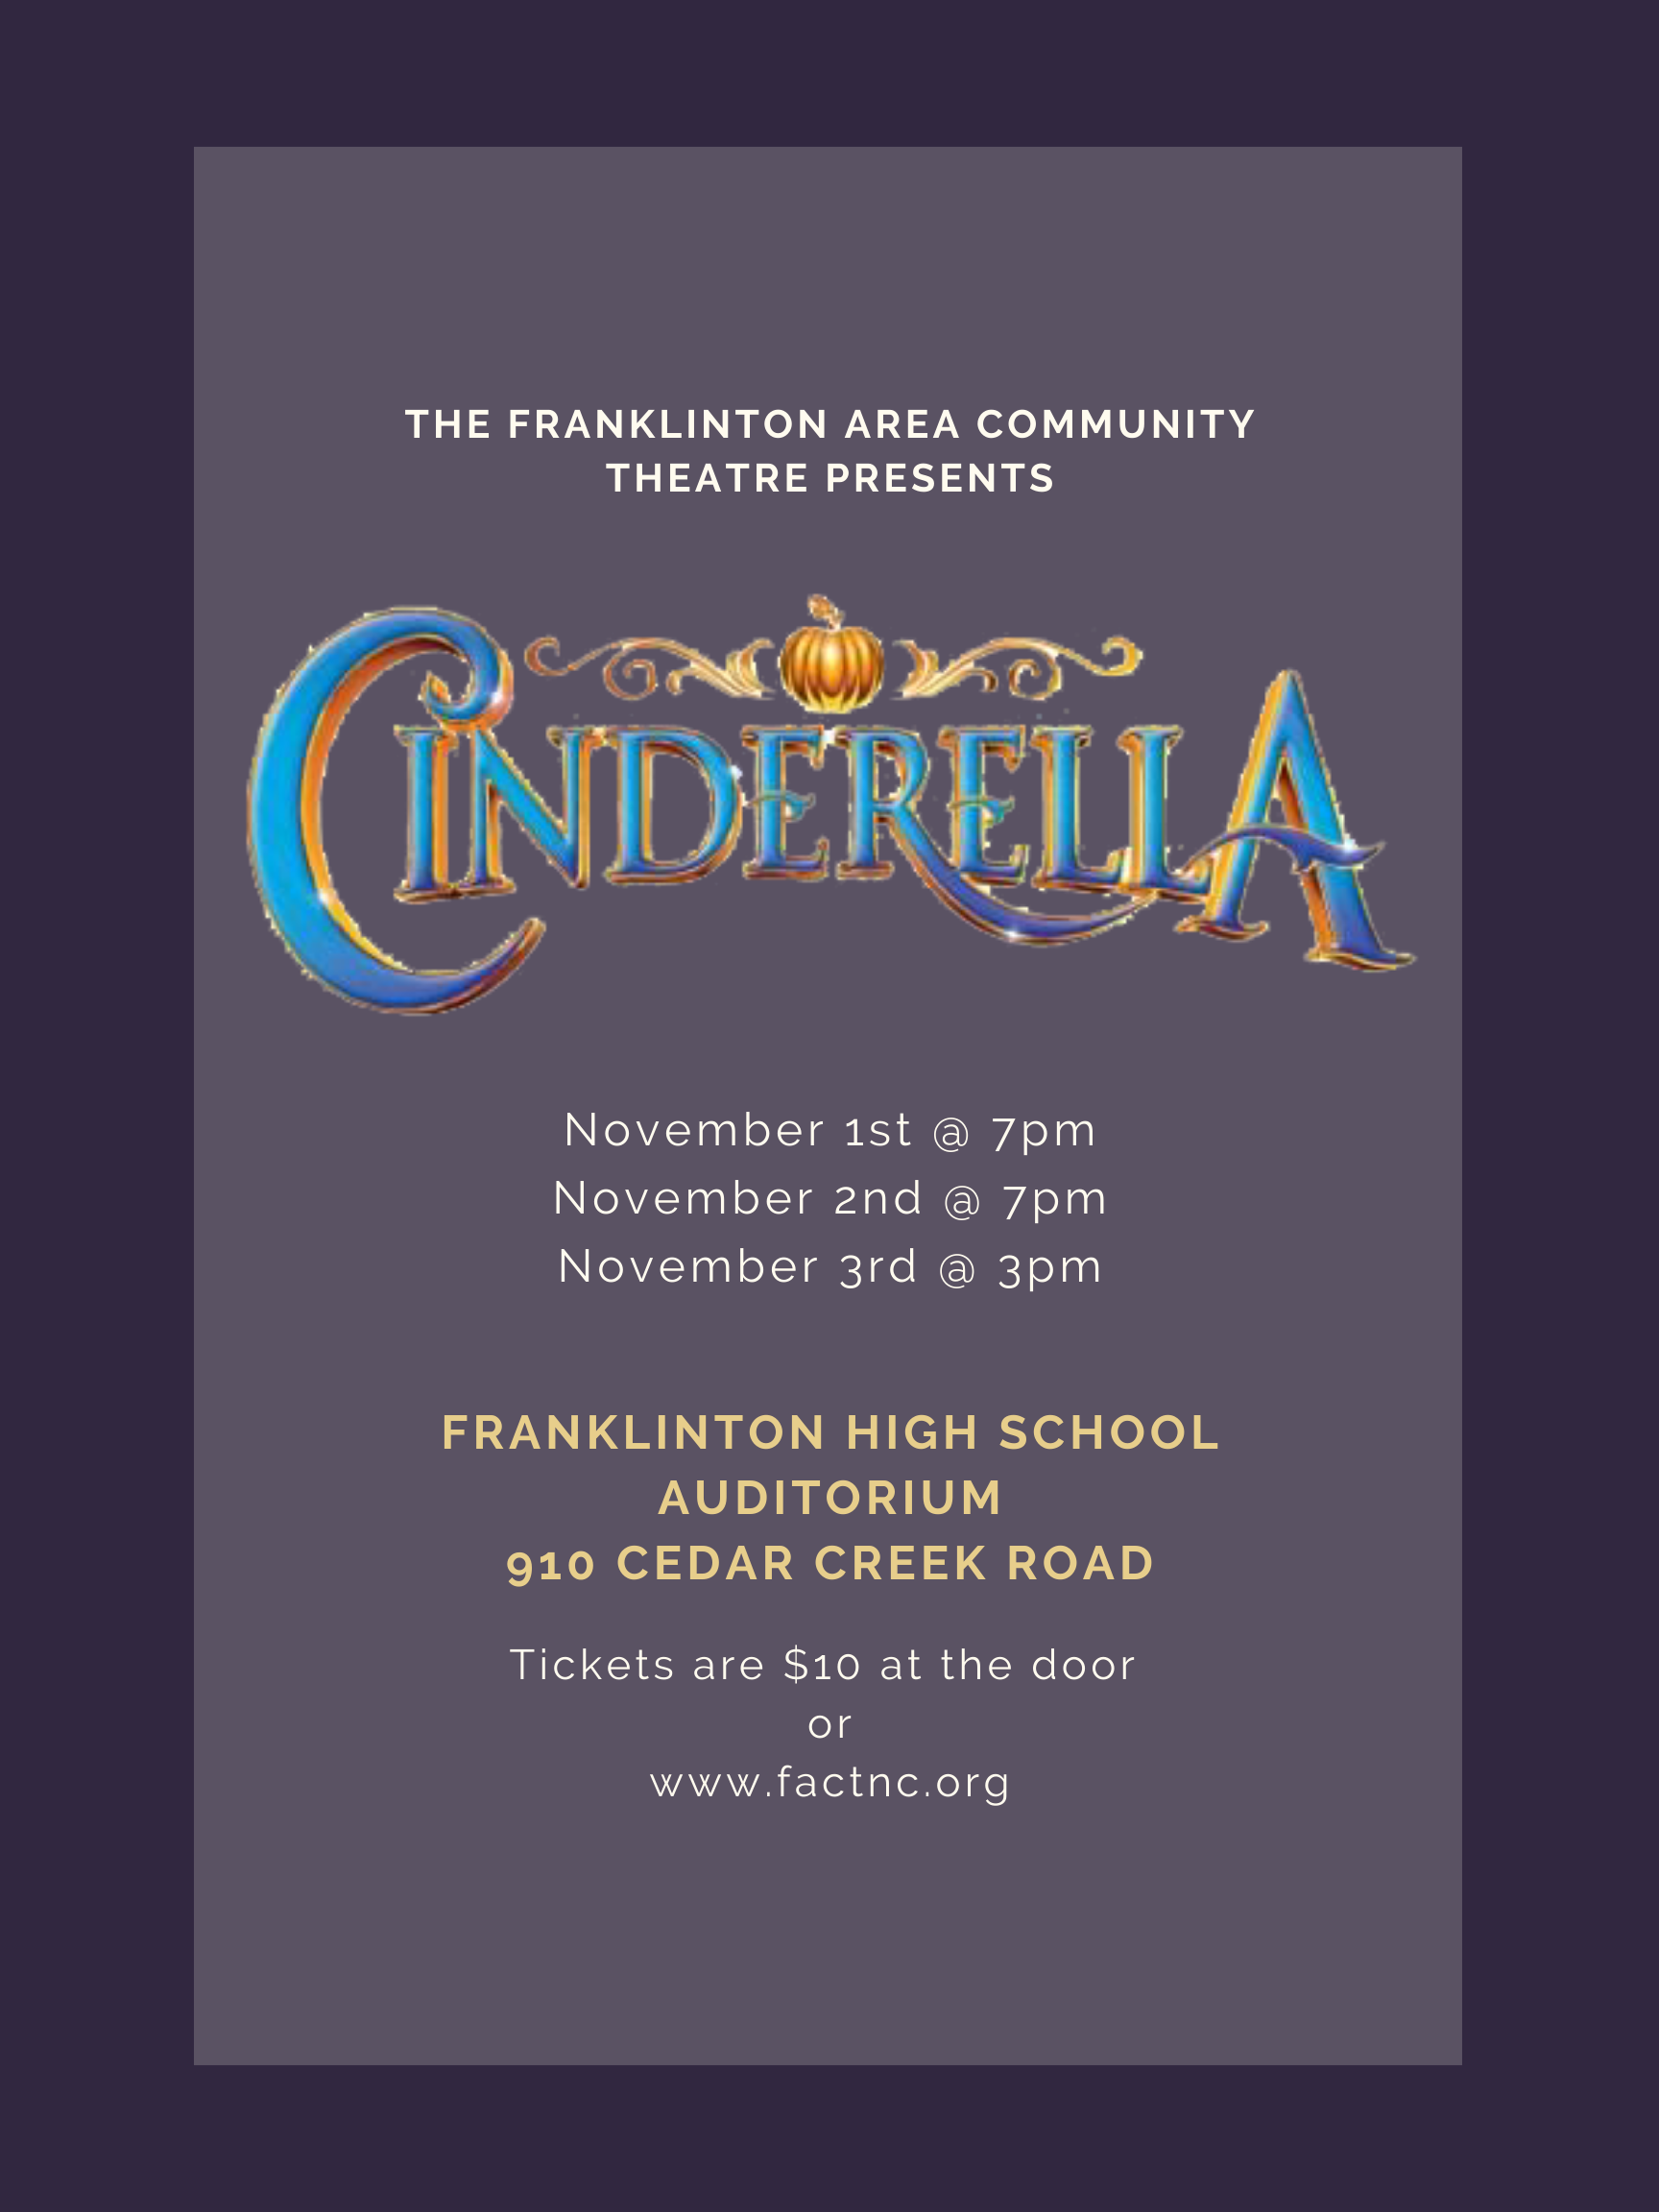 Join us for Cinderella!